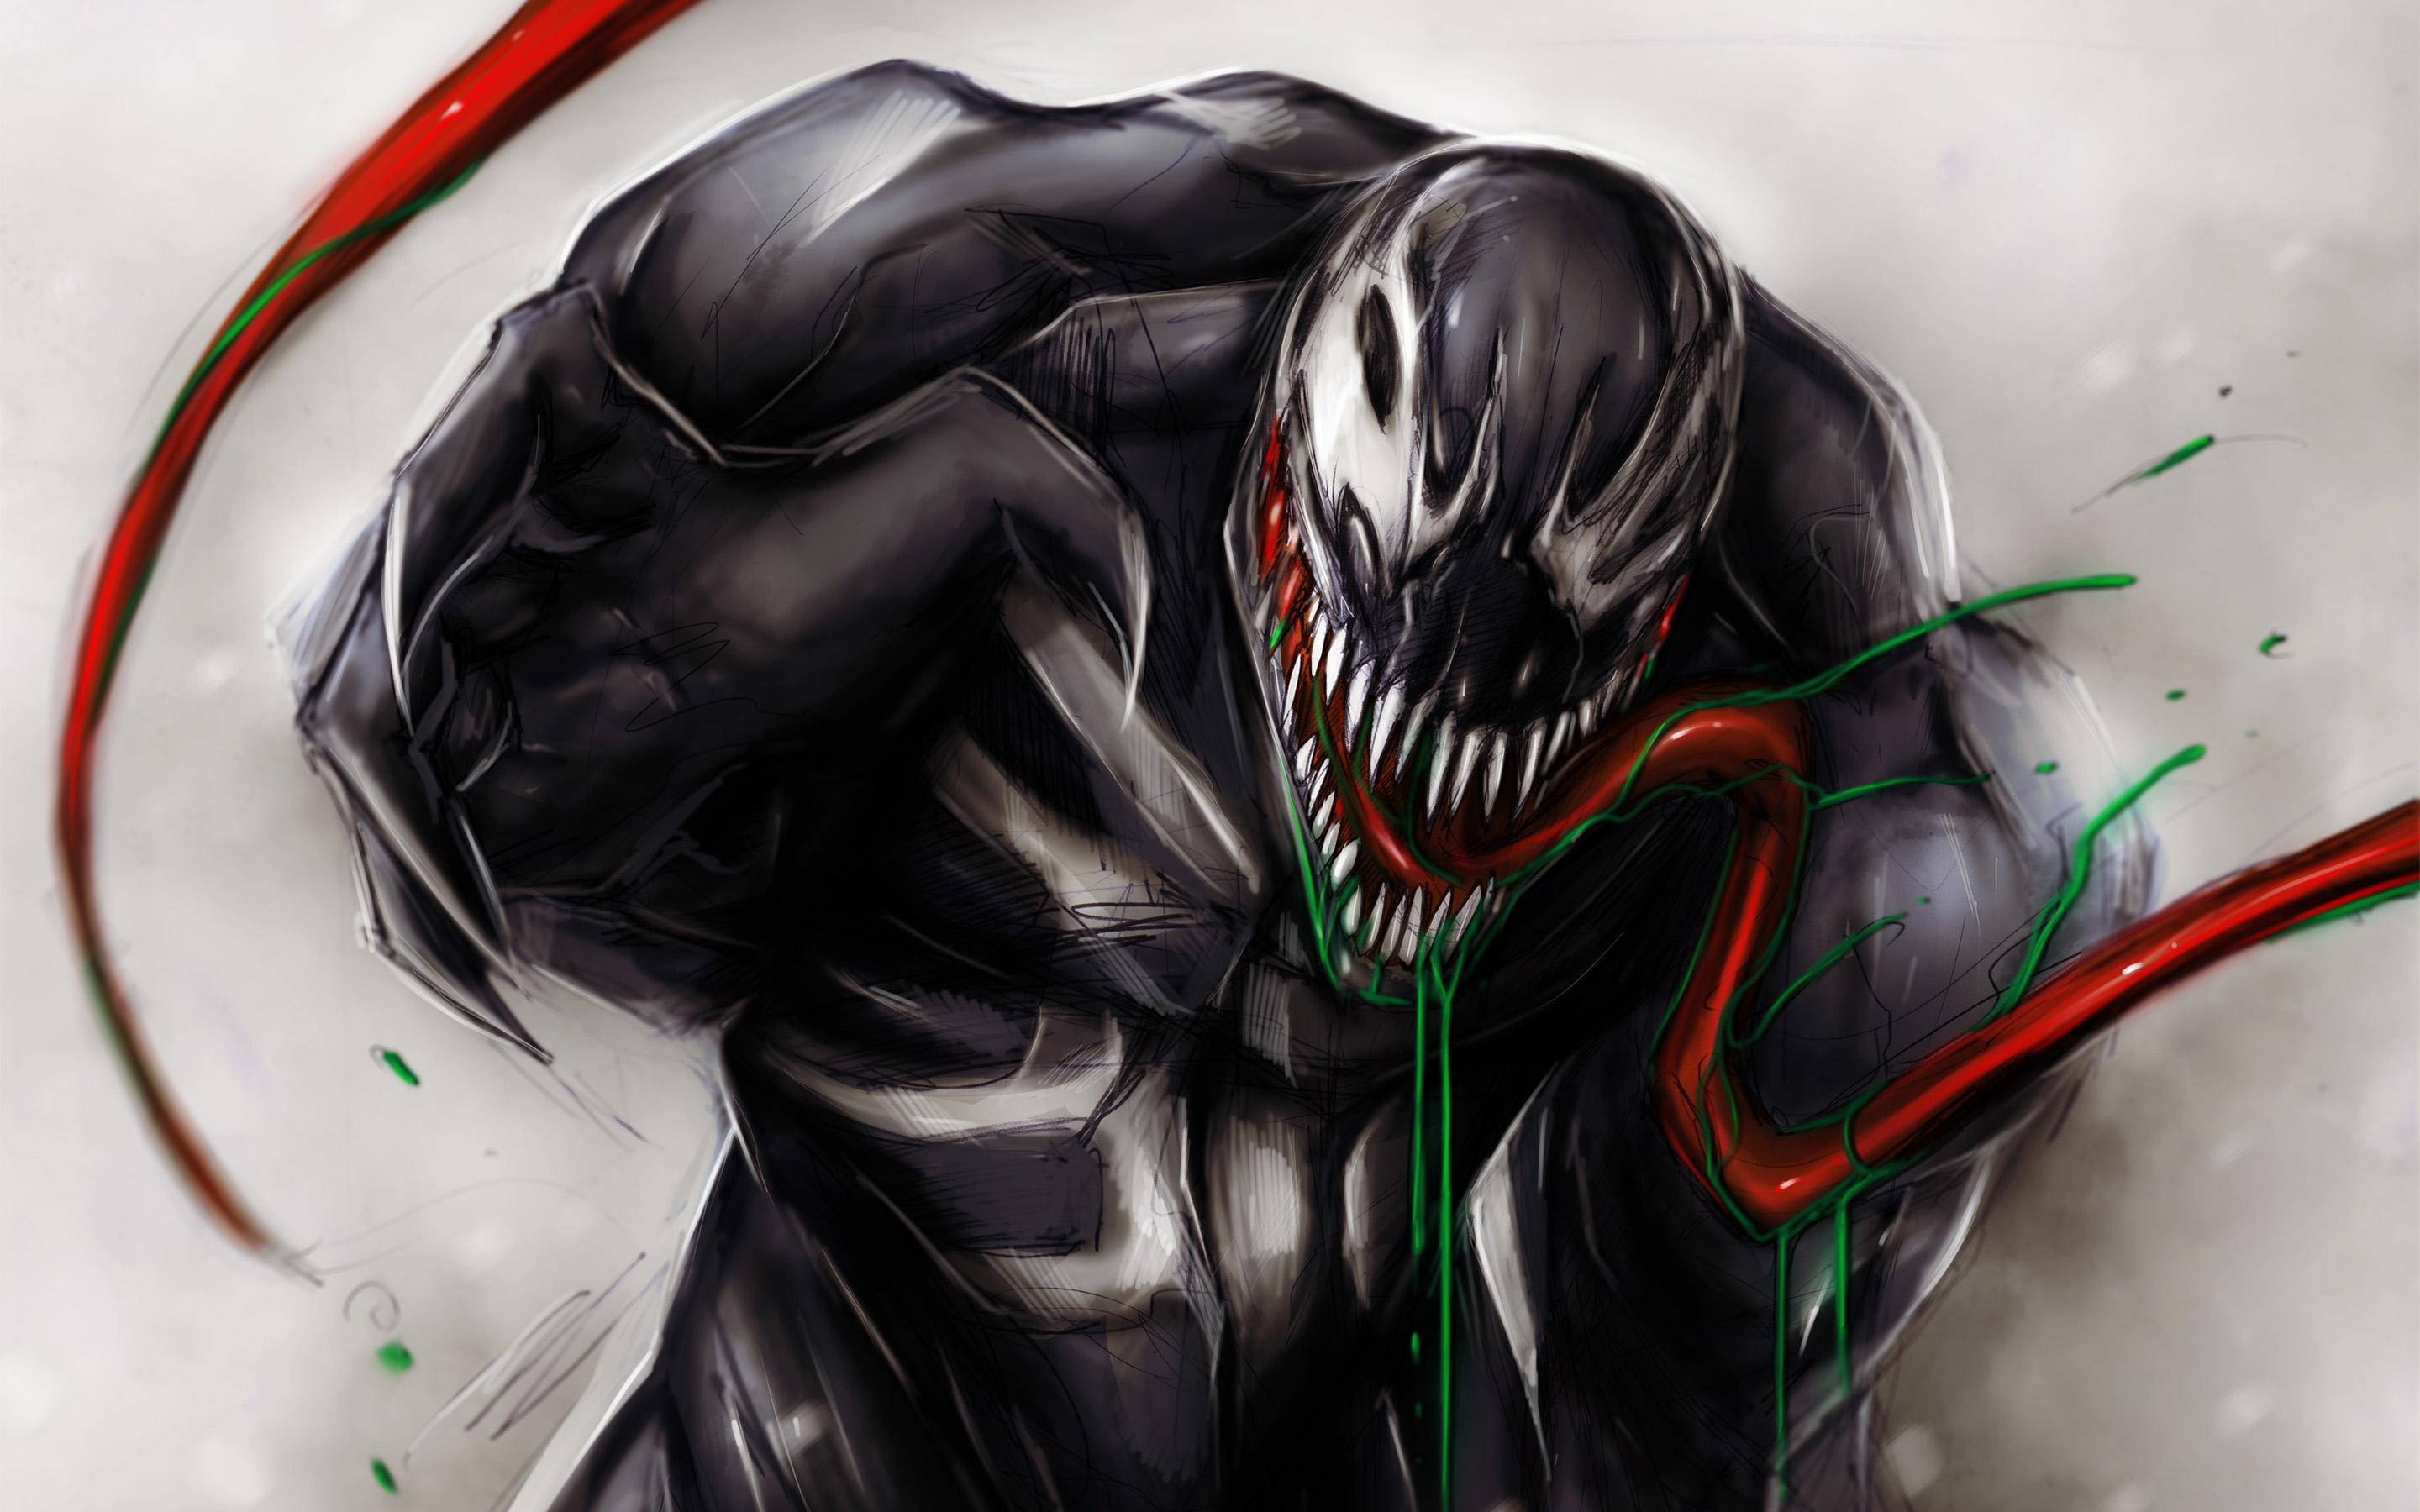 Venom Hd Wallpapers For Desktop Download